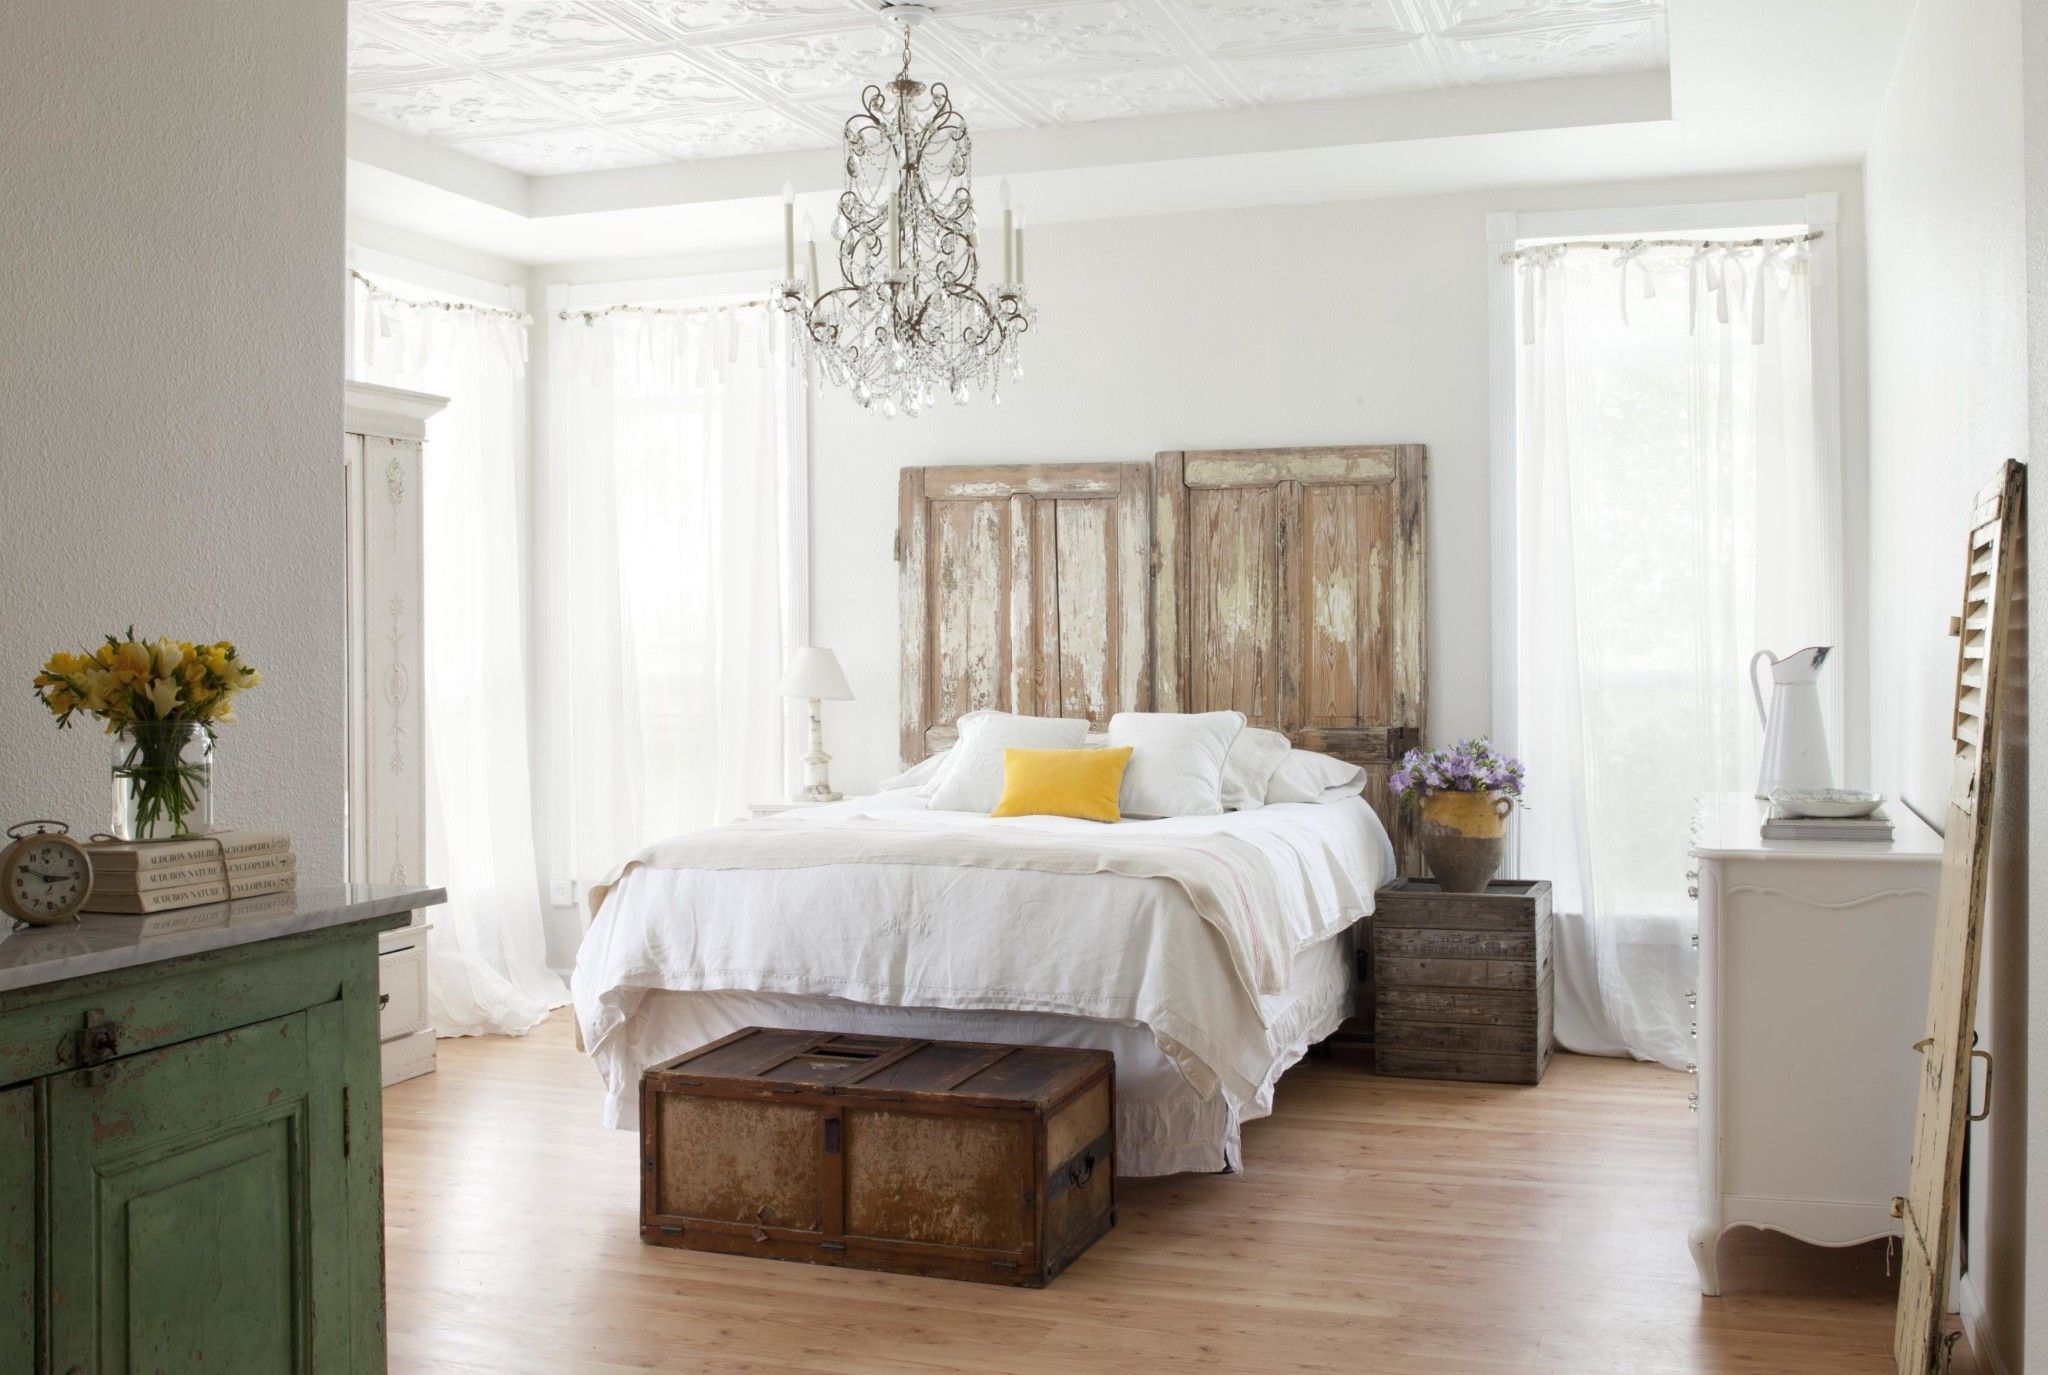 interior design bedroom vintage. Vintage Bedroom Design Is A Competent Combination Of Old-fashioned Luxury And Modern Comfort, Elegance Unobtrusive Simplicity. Interior N